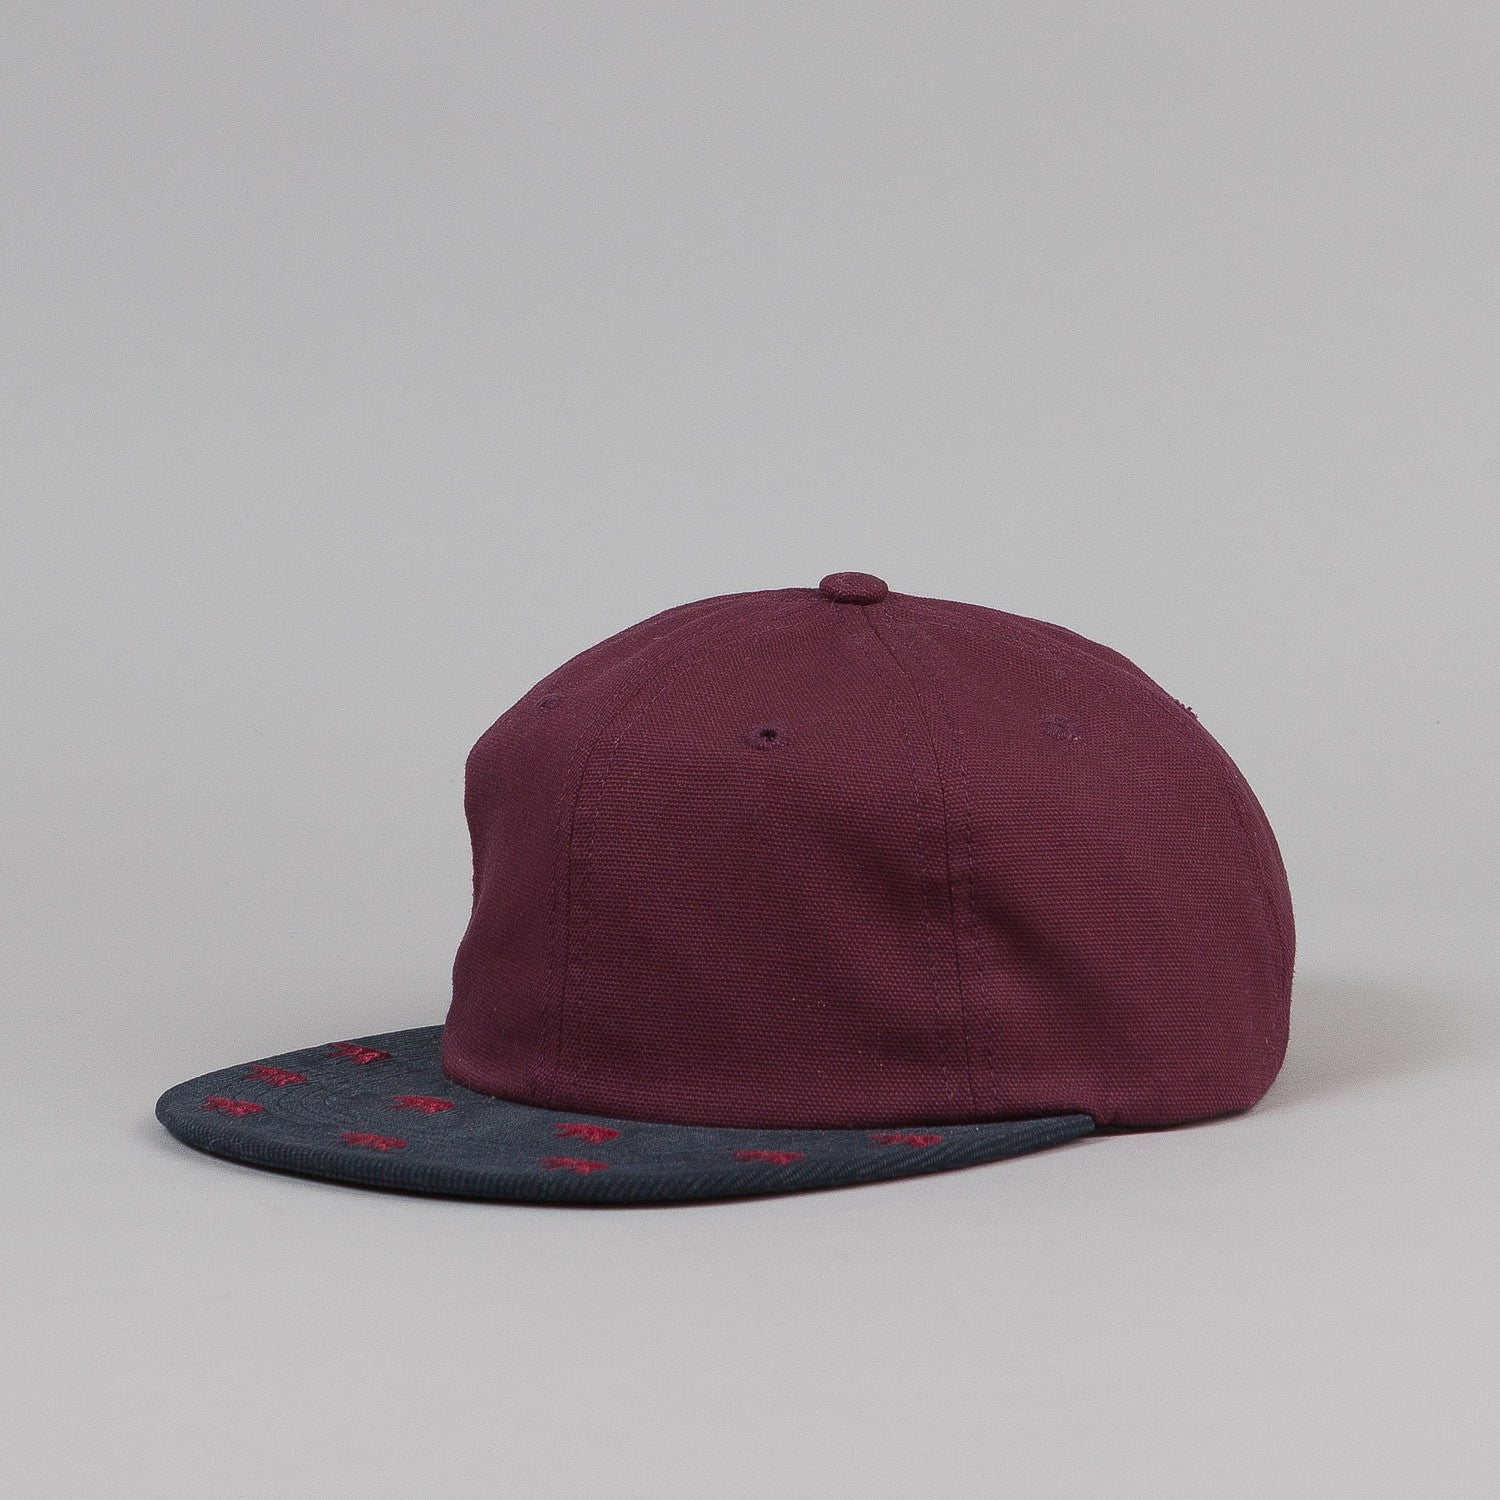 Belief Arctic 6 Panel Cap